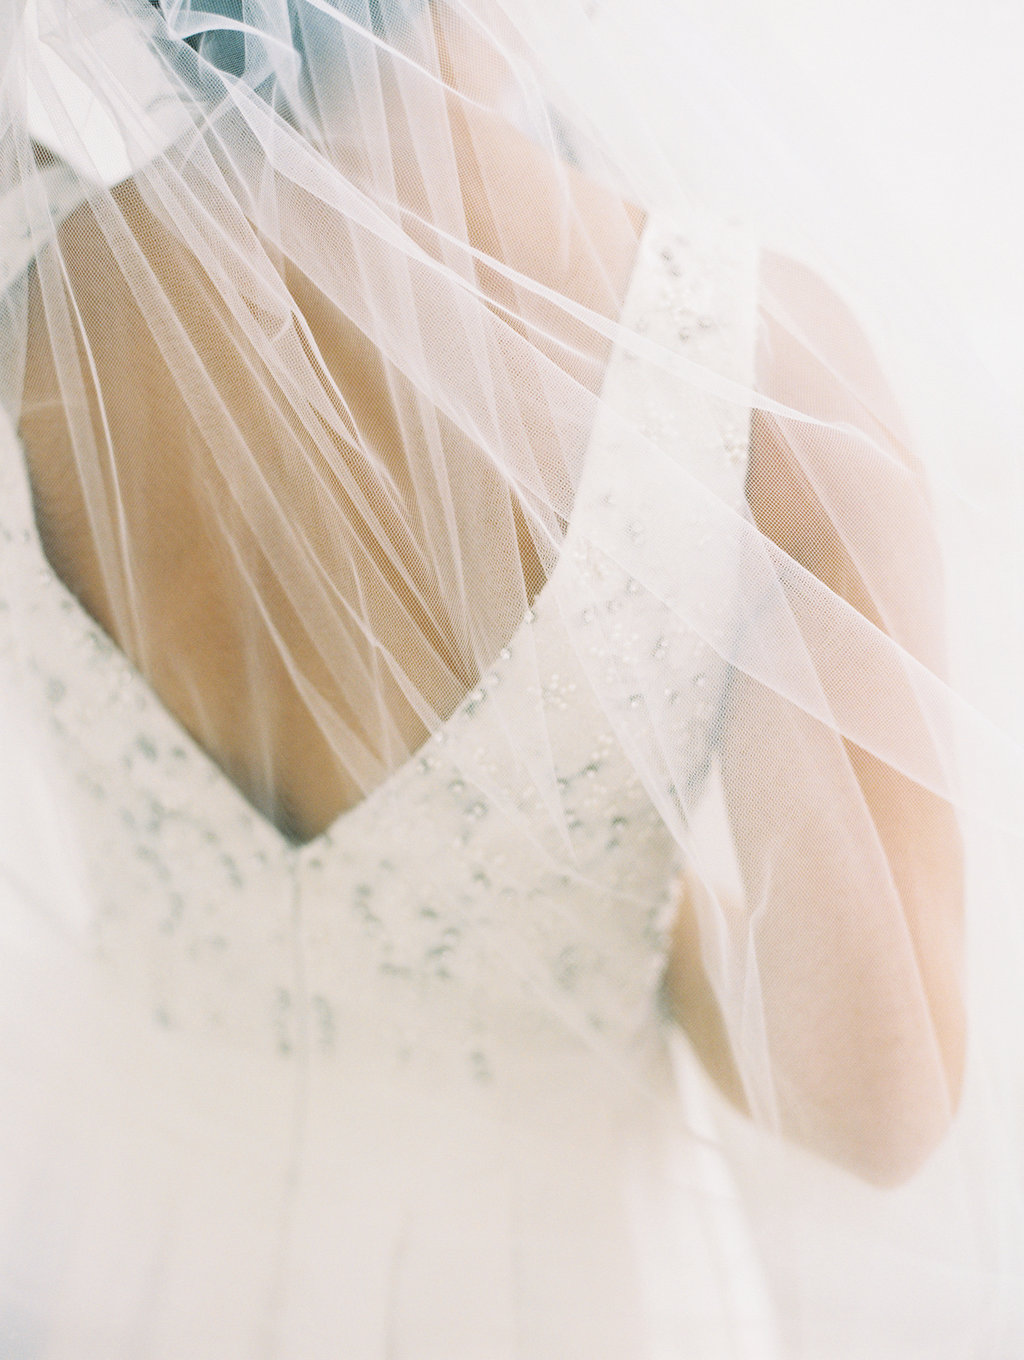 romantic wedding veils - photo by Abby Jiu Photography https://ruffledblog.com/modern-metallics-wedding-in-downtown-washington-dc